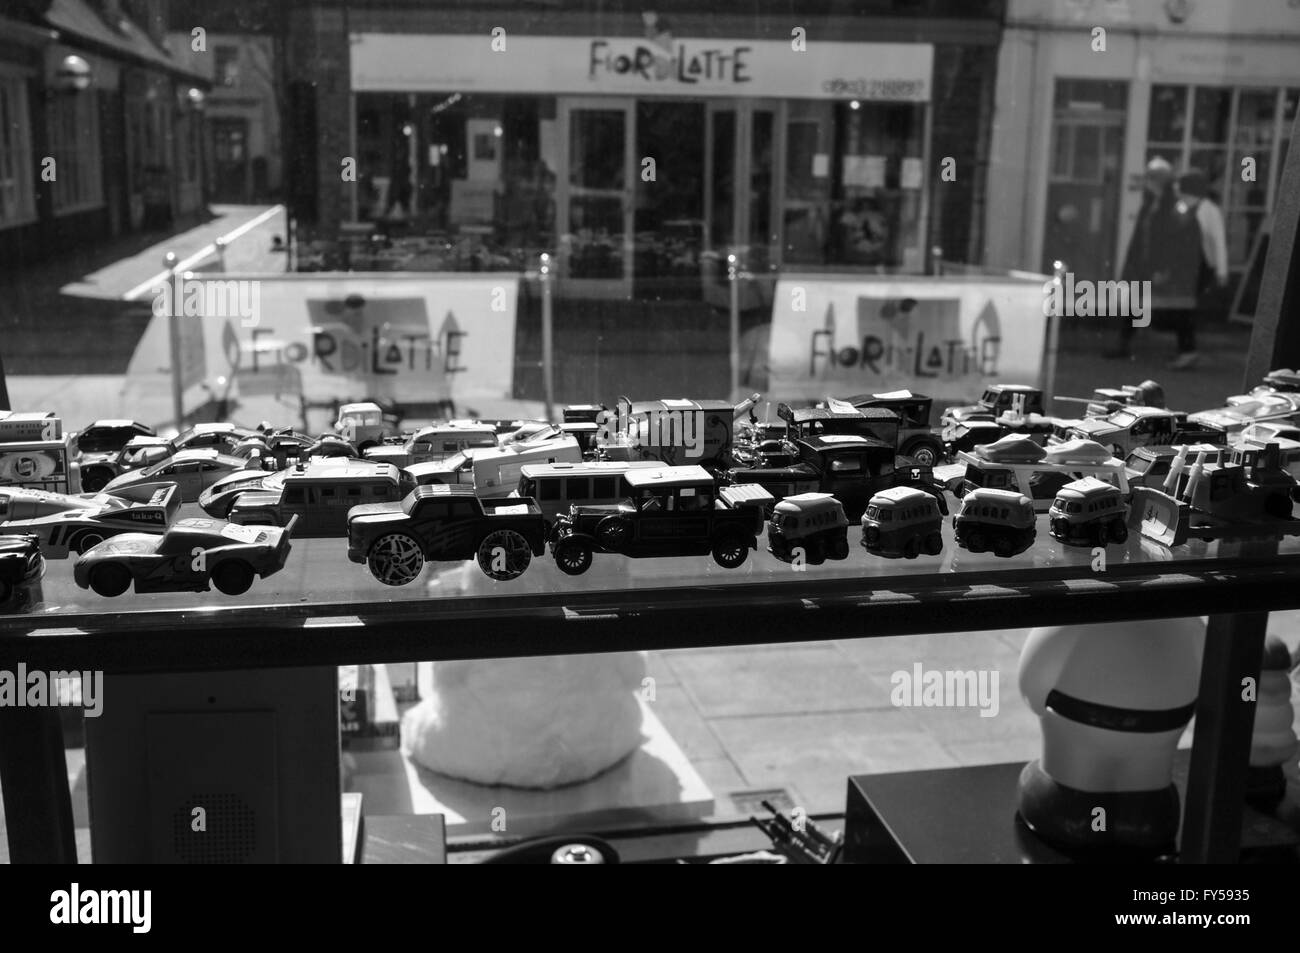 A black and white image of old toy cars in the window of shop Stock Photo